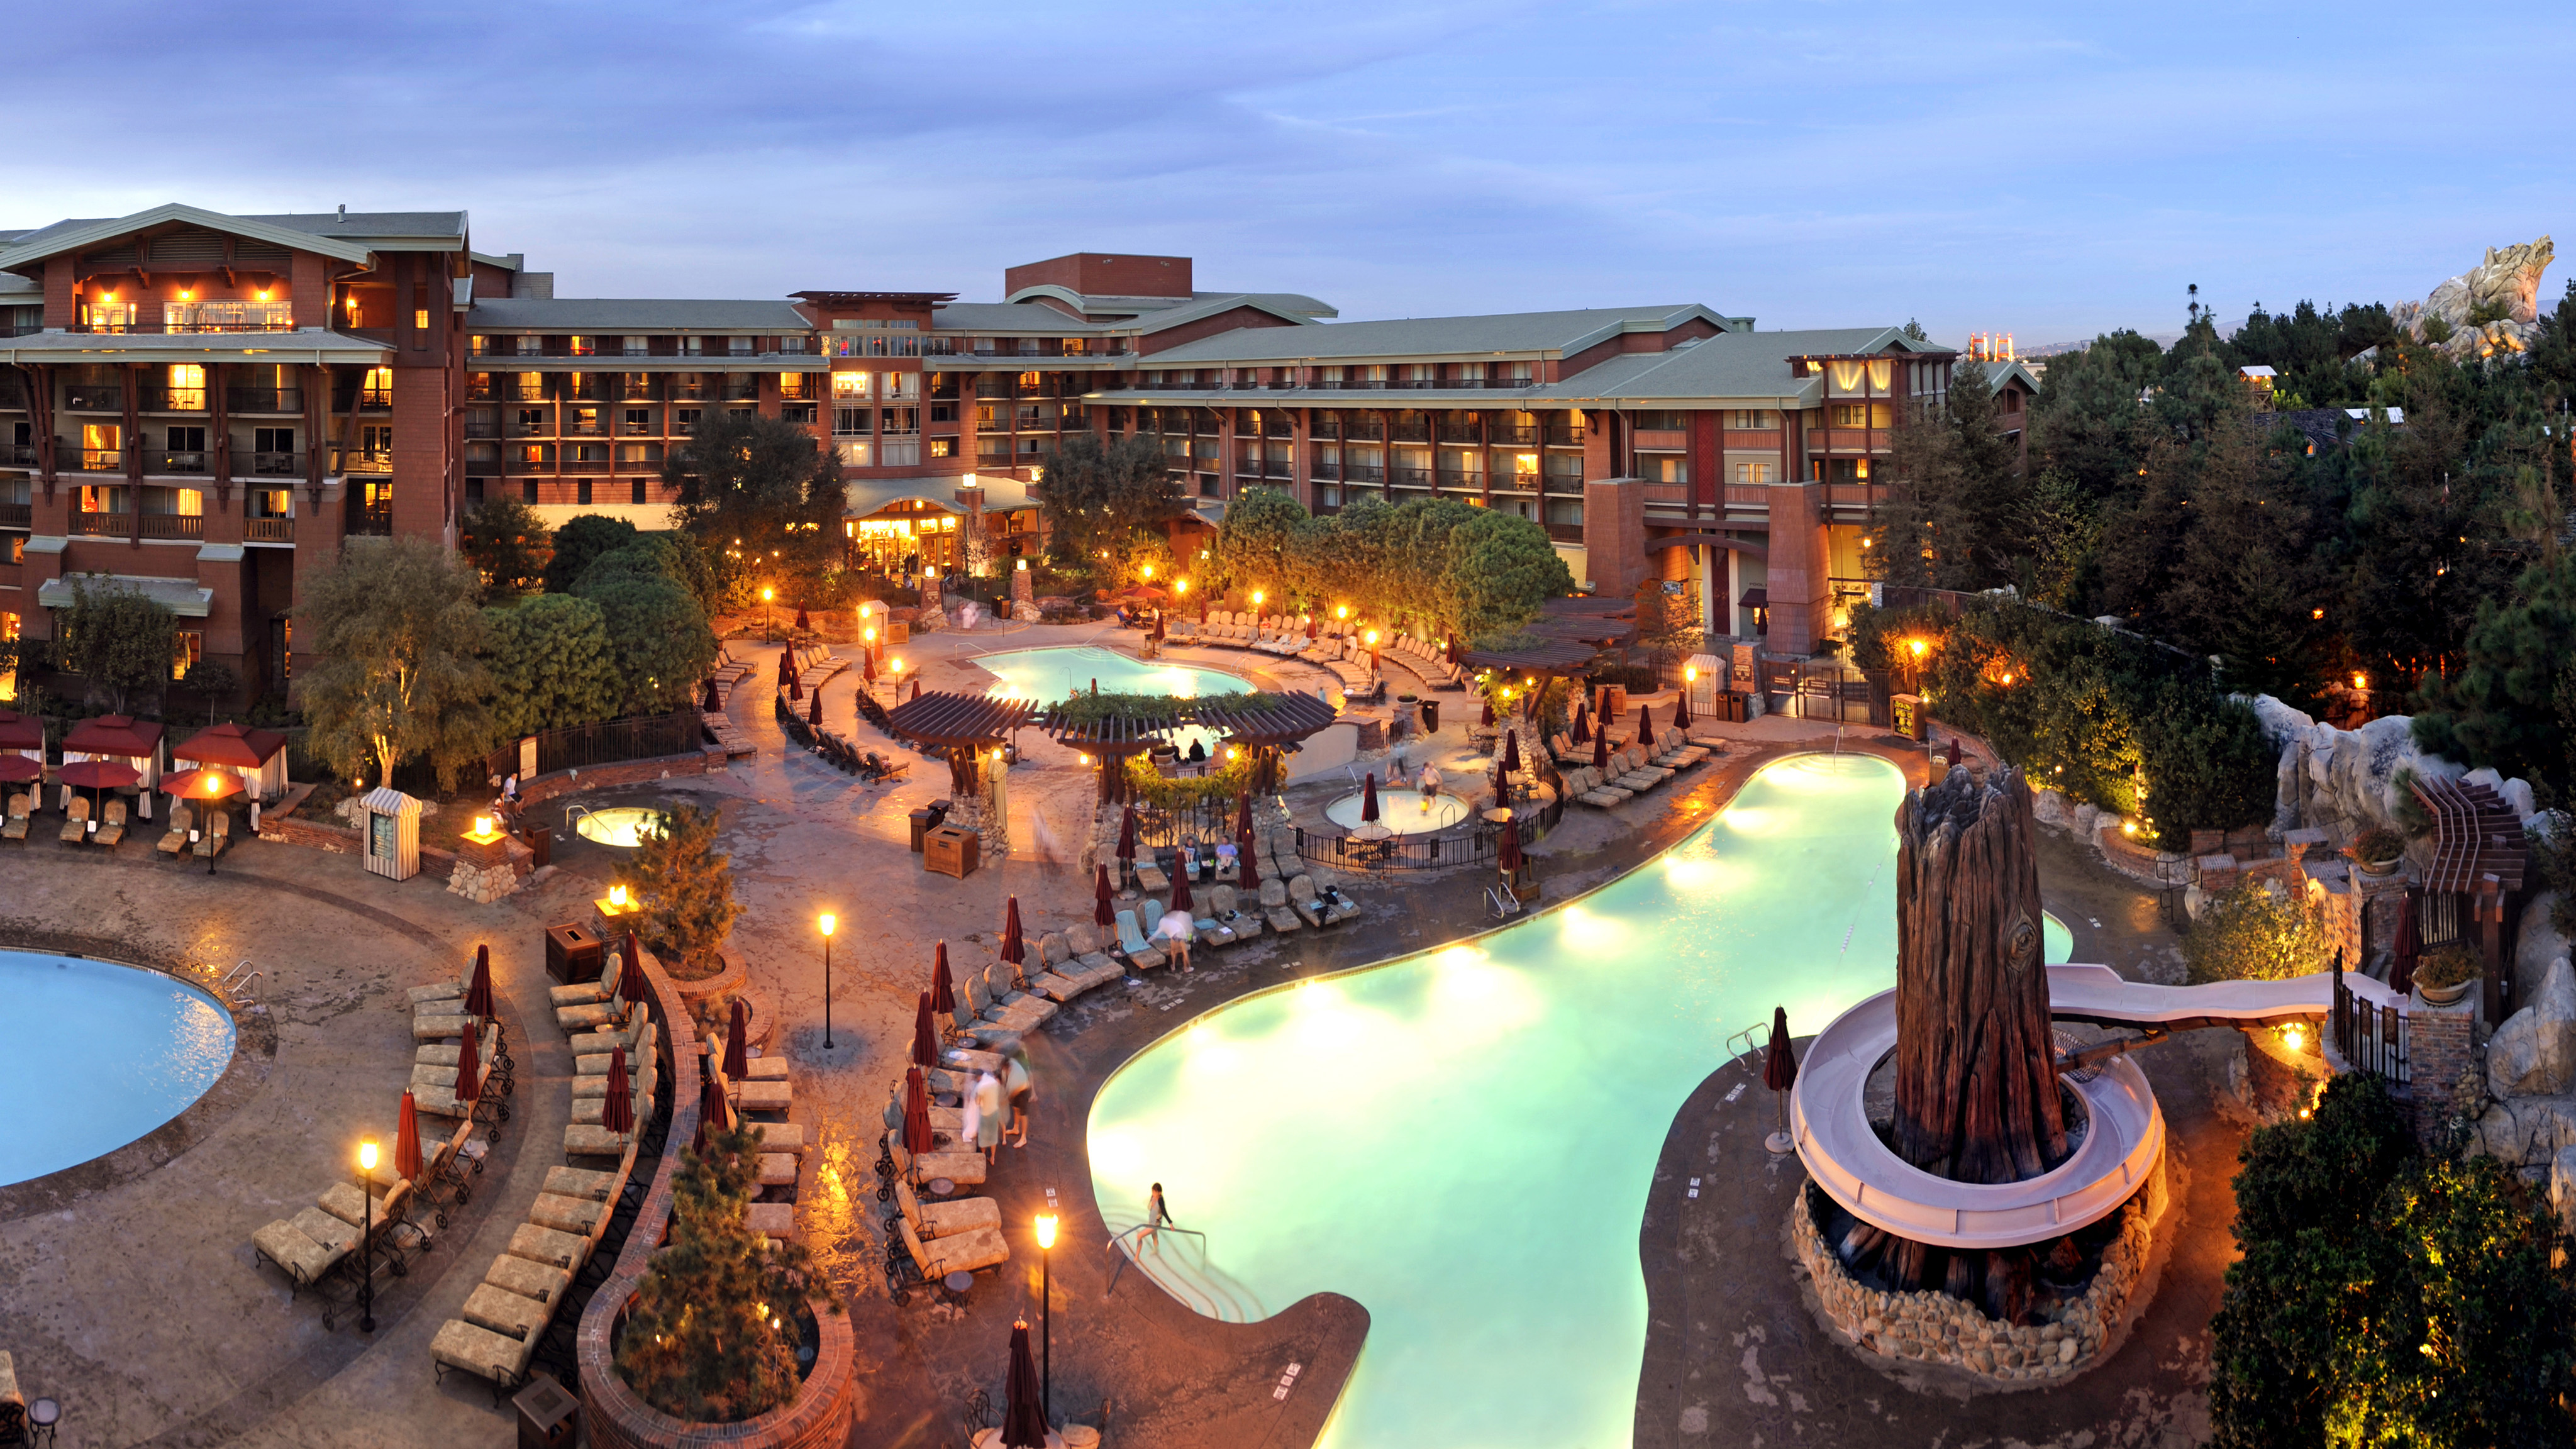 Outdoor pool at Disney's Grand Californian Hotel.